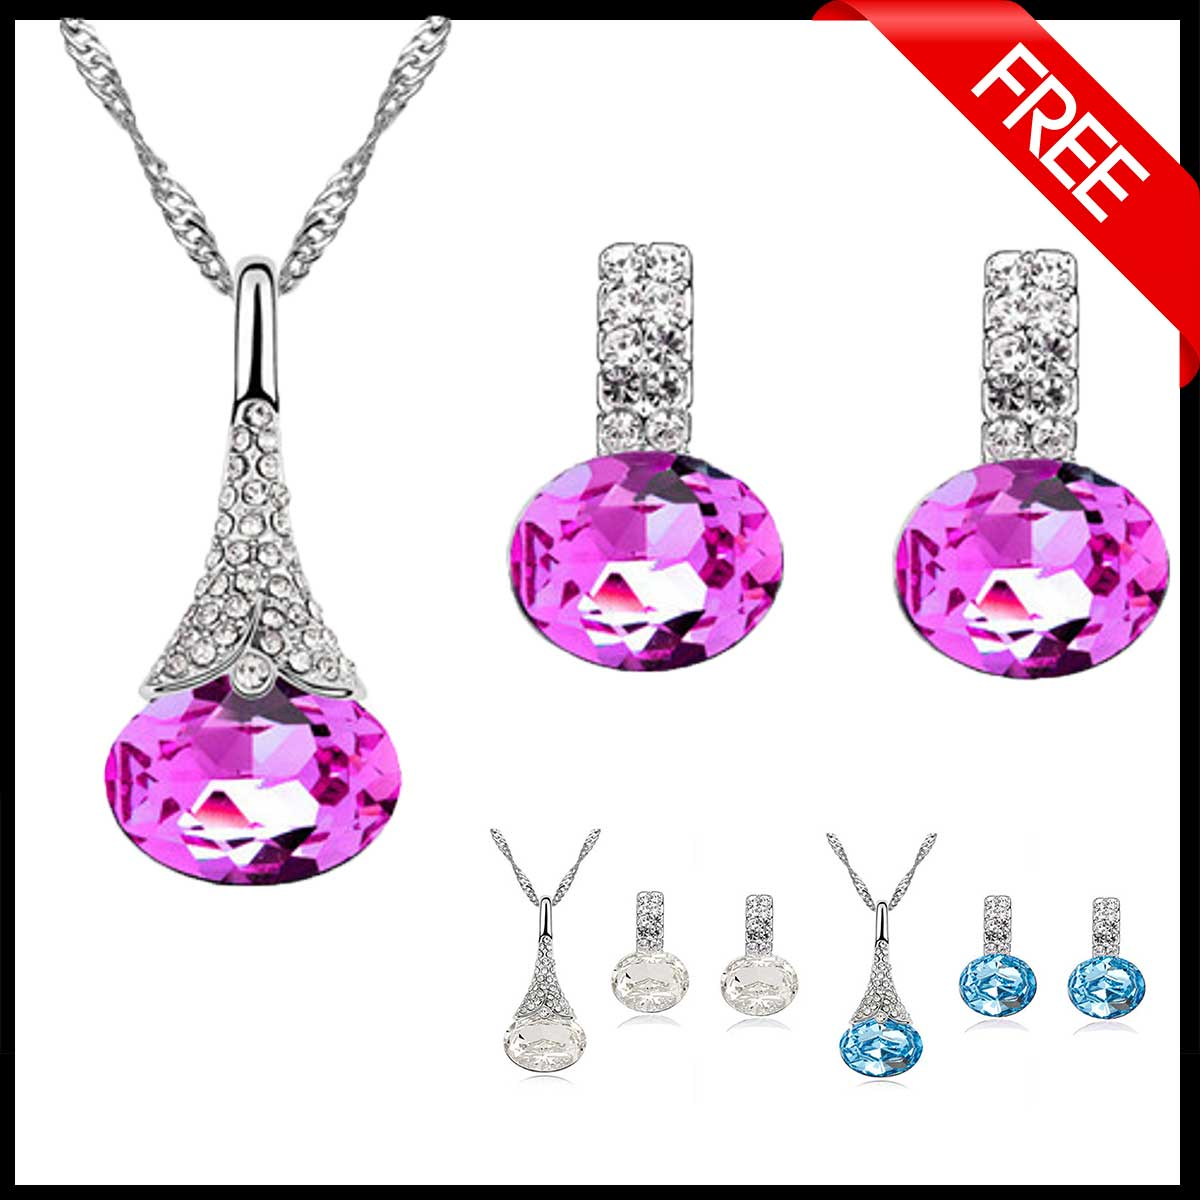 FREE Crystal Water Drop Pendant & Earring Set - GearBody